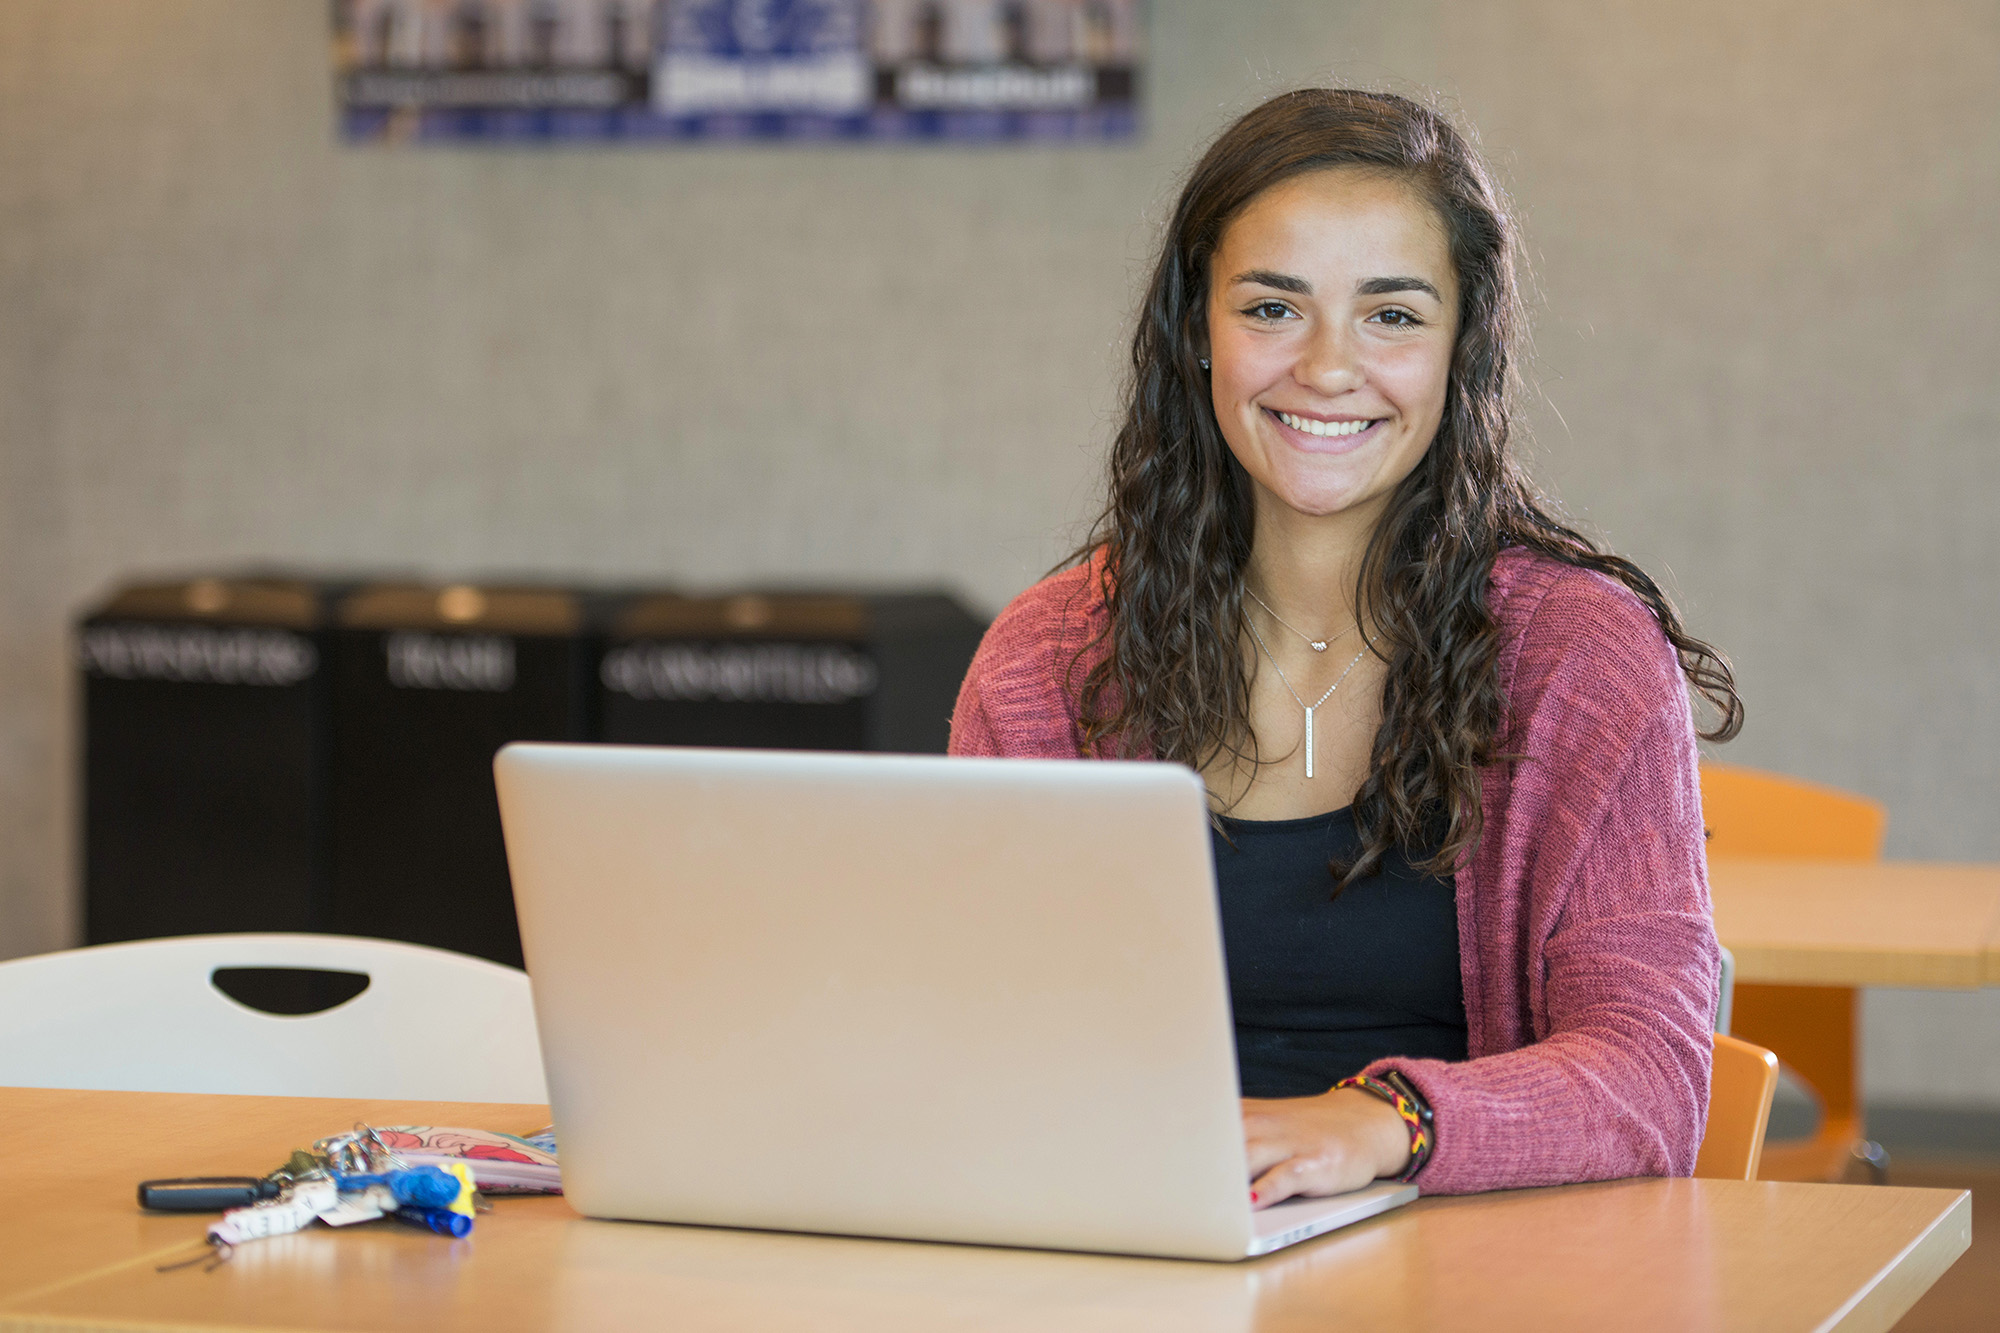 A student poses with a laptop in the Student Center.